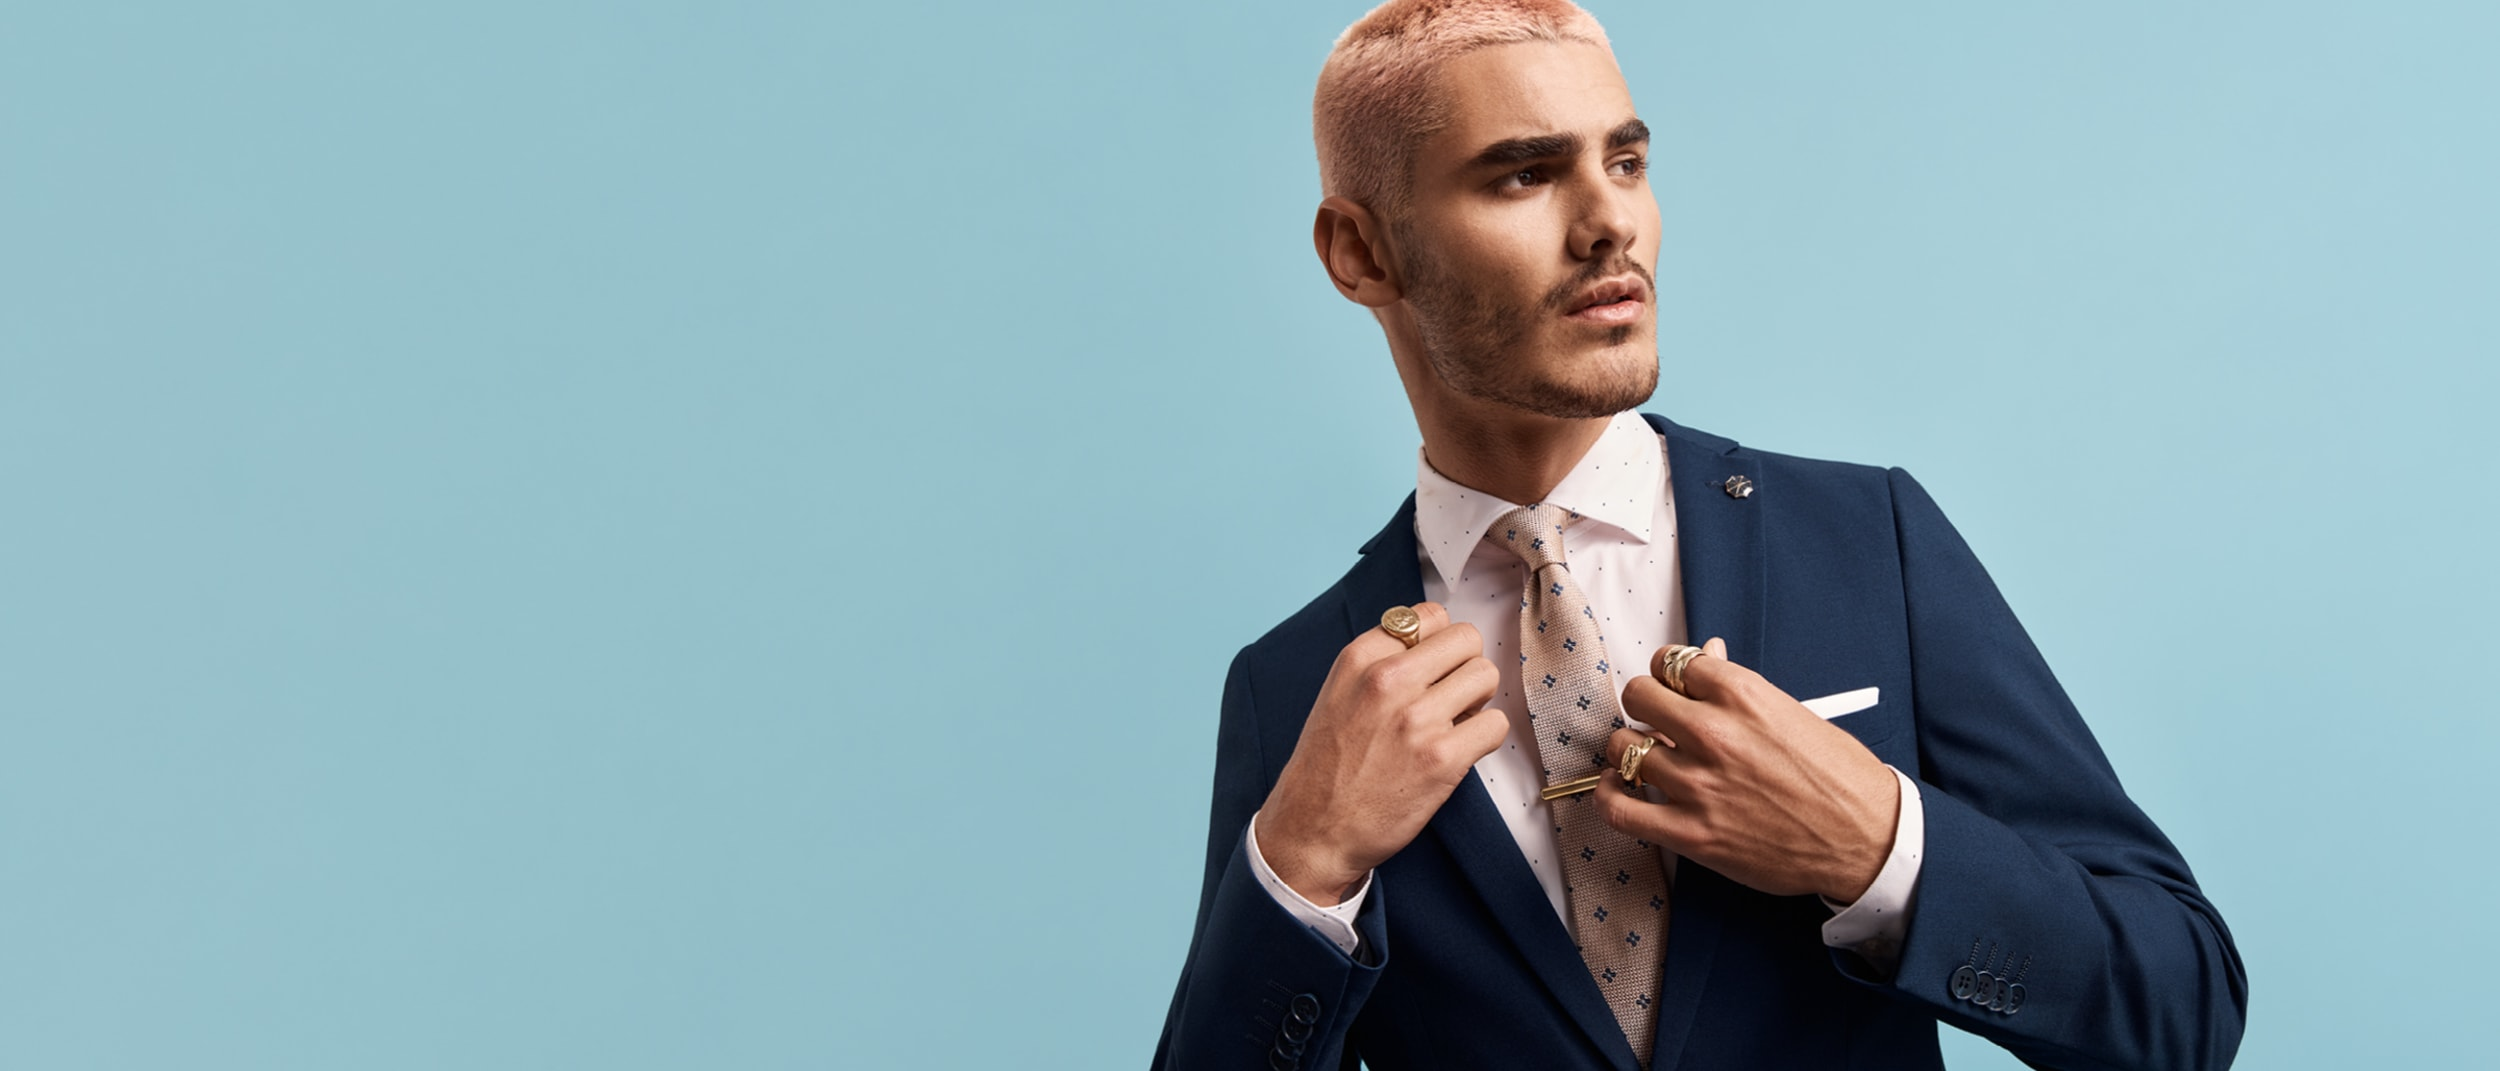 yd. 25% off all suits - save $75